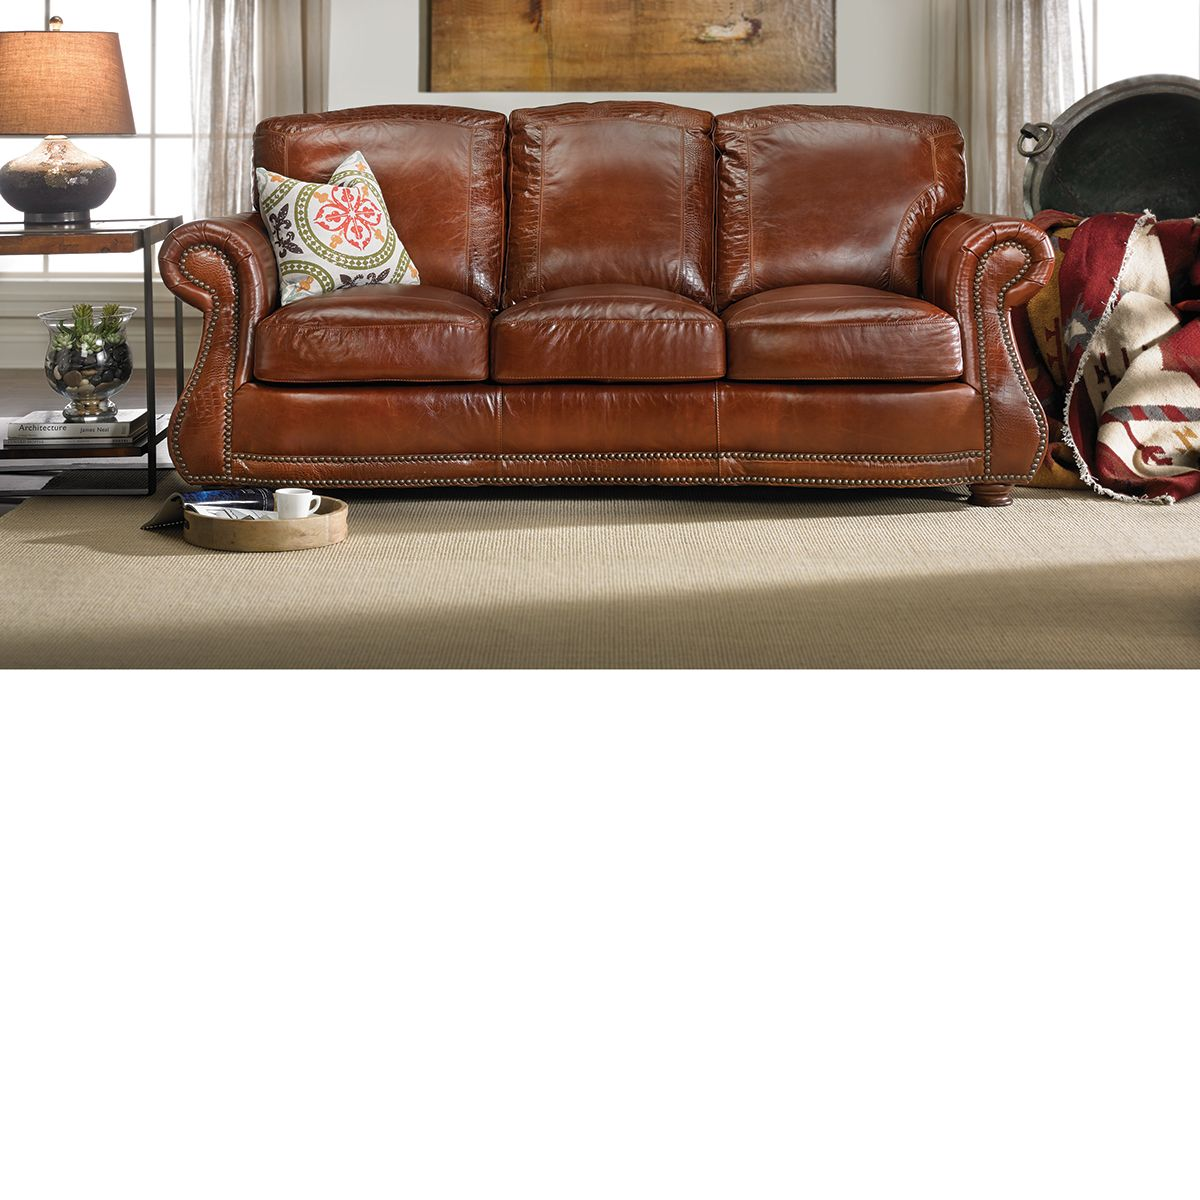 The Dump Furniture - Brandy Sofa